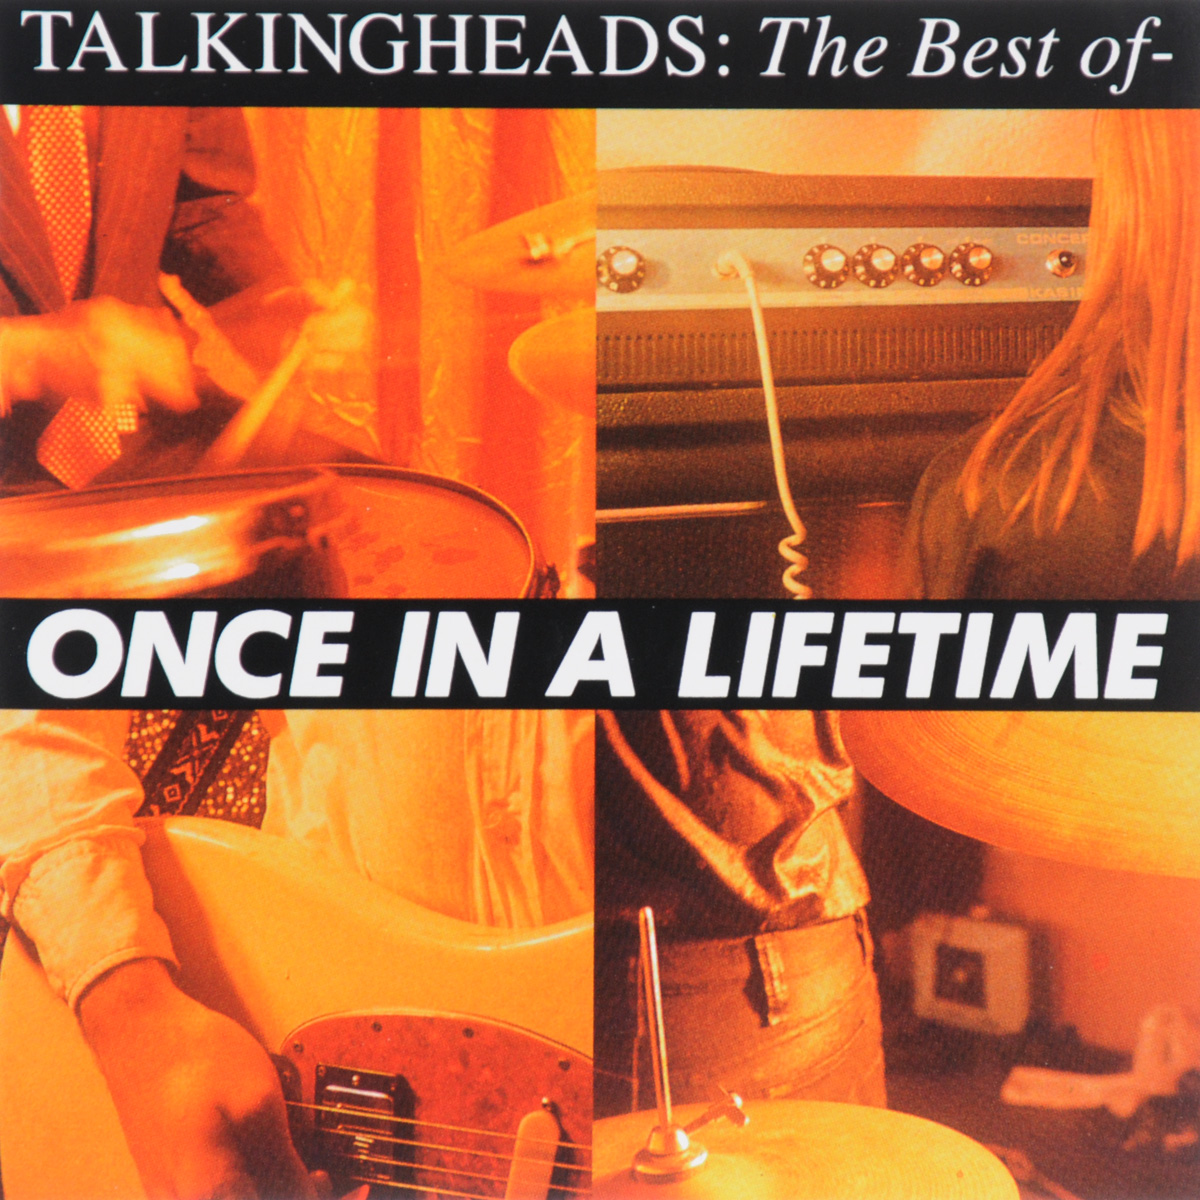 Talkingheads. The Best Of - Once In A Lifetime